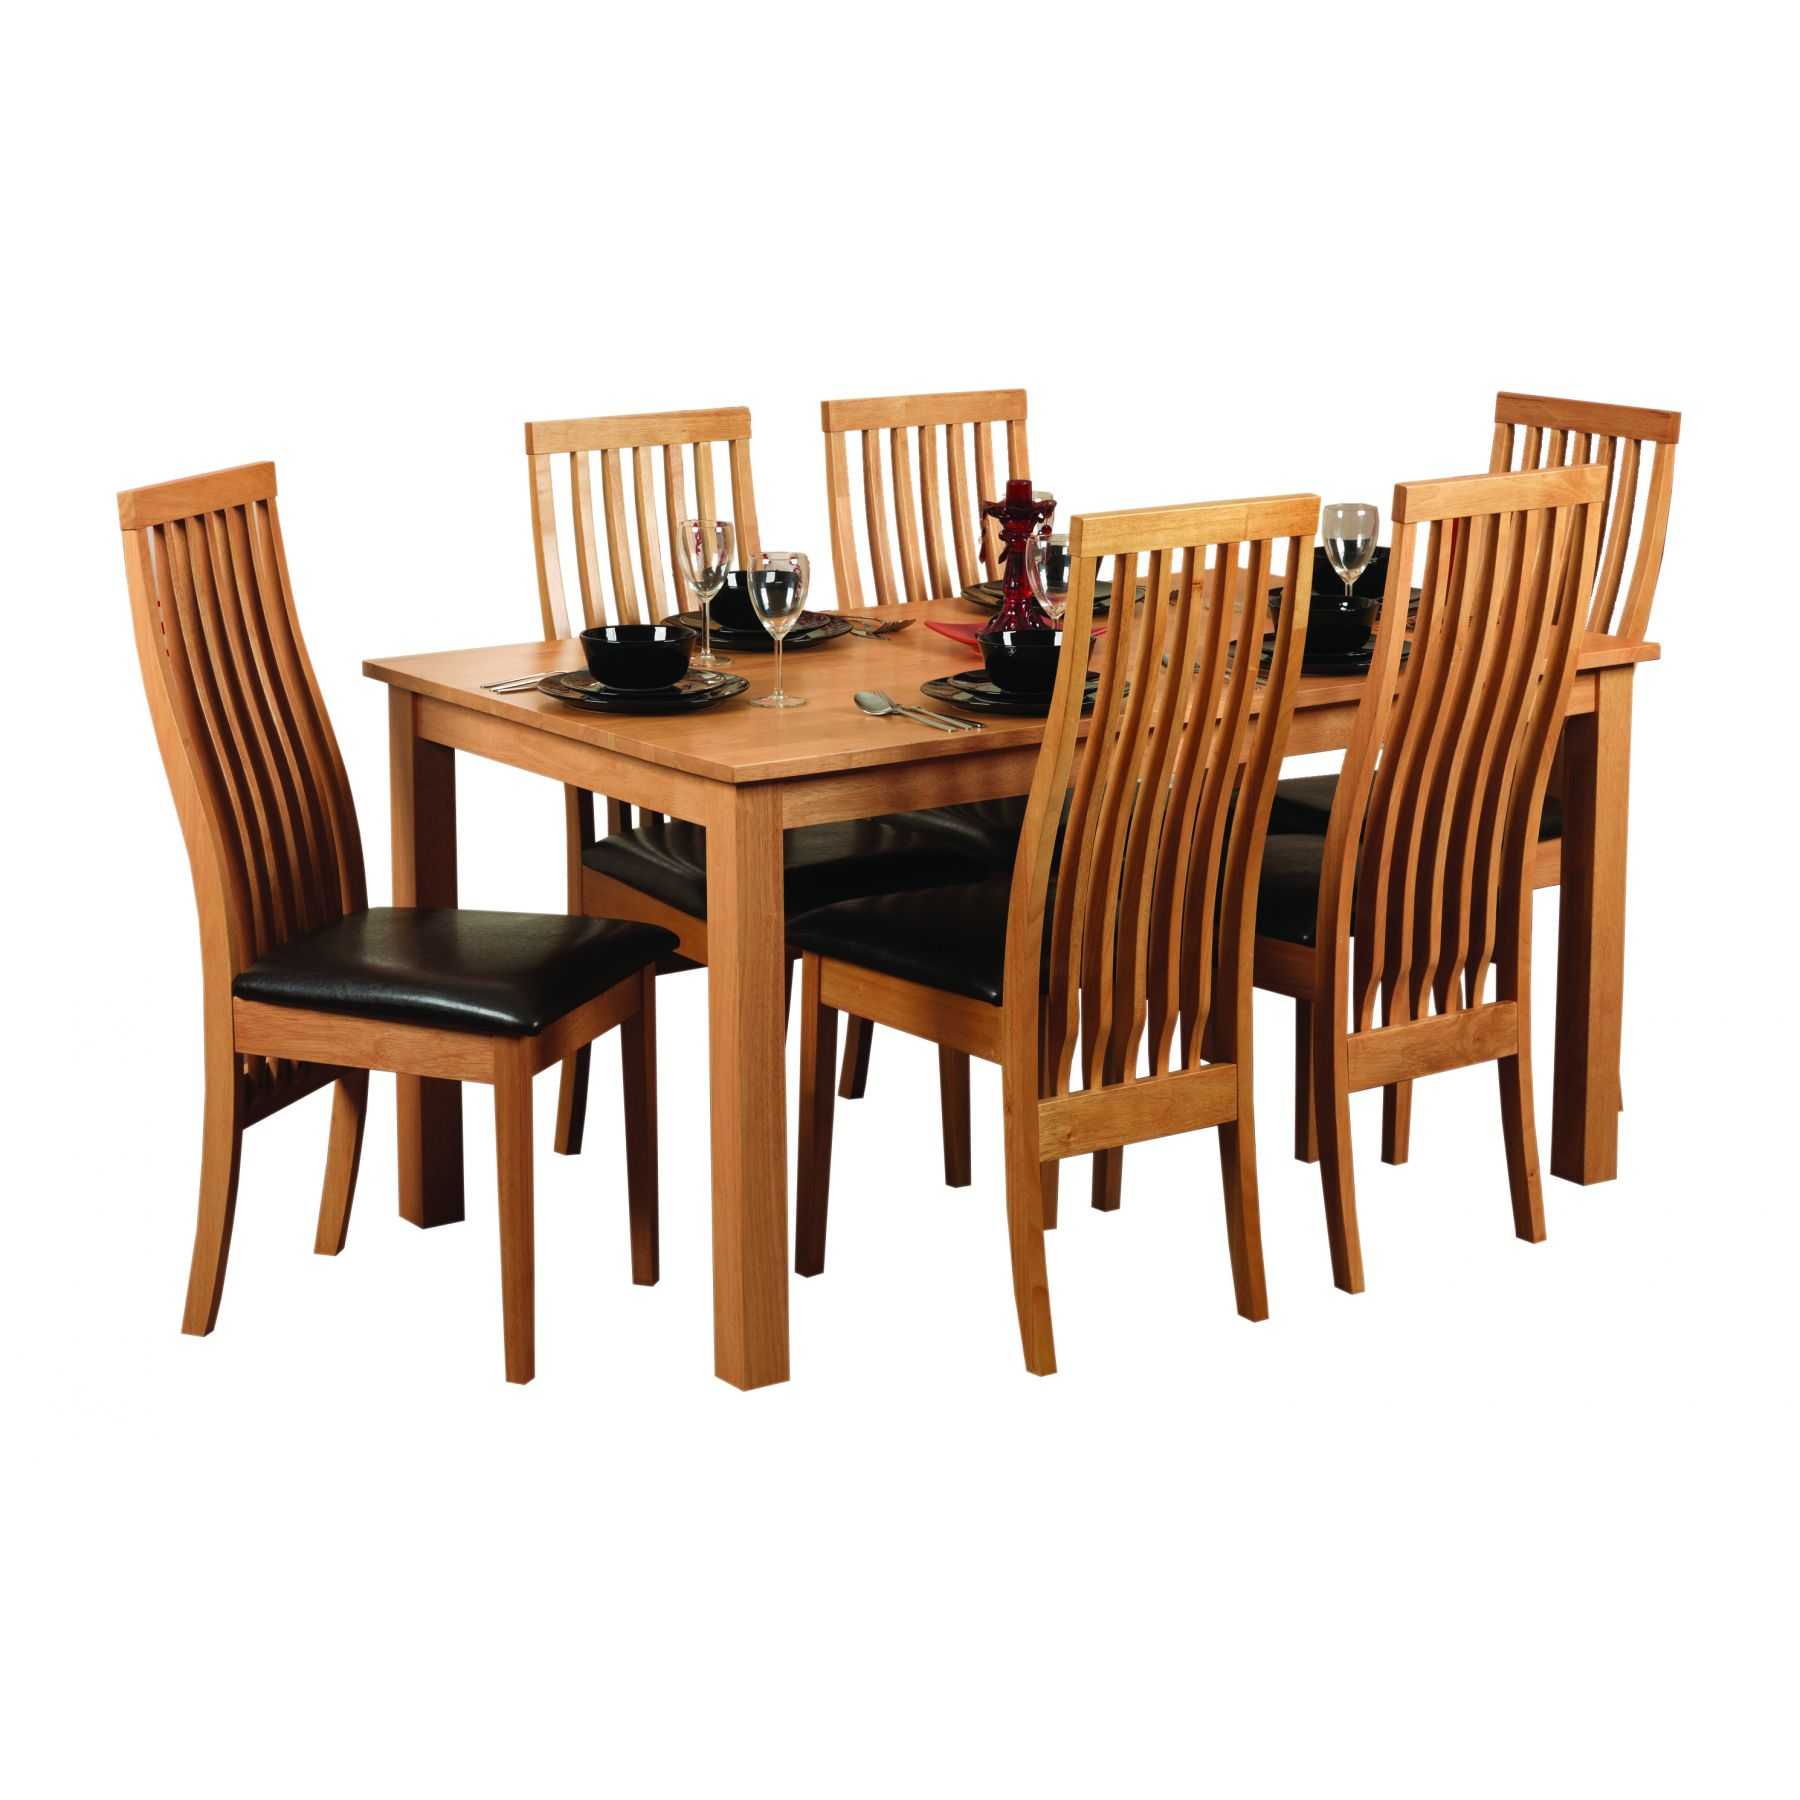 Table clipart breakfast table. Modern dining room png